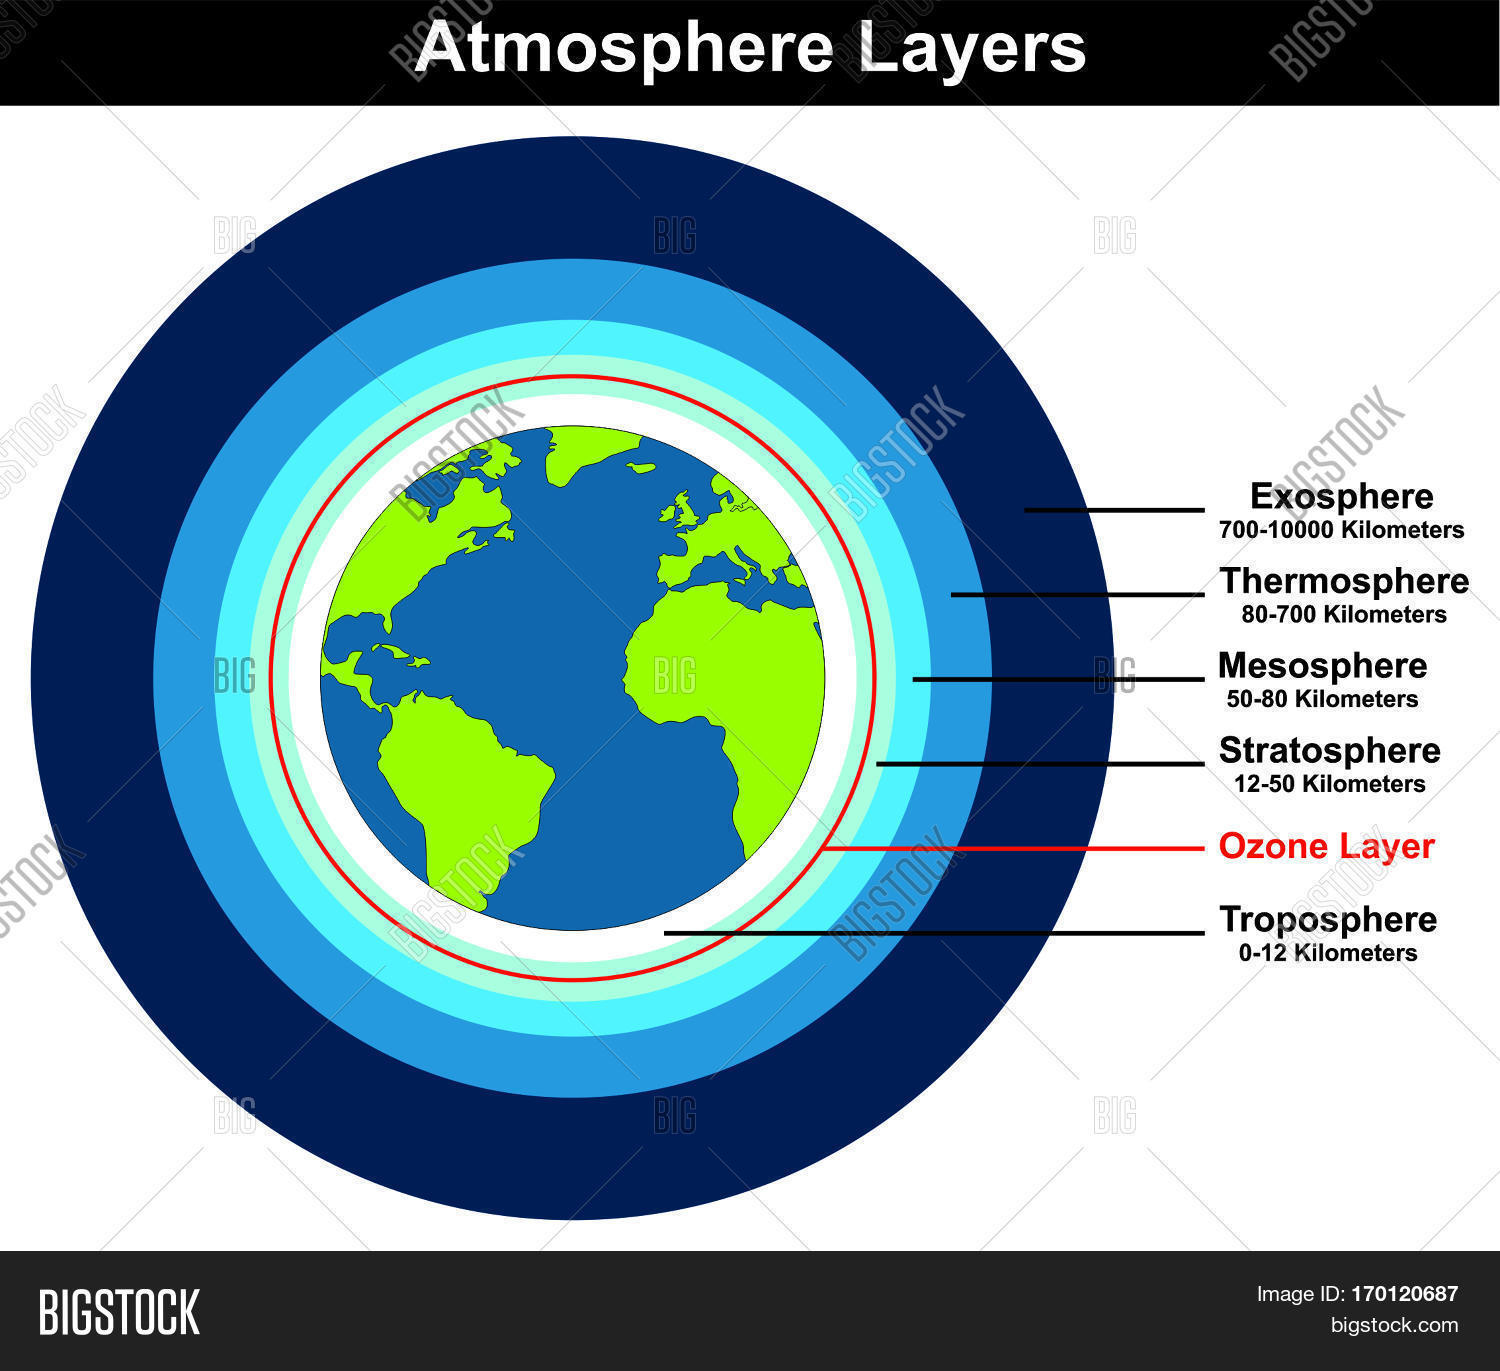 Atmosphere Layers Structure Earth Image & Photo | Bigstock